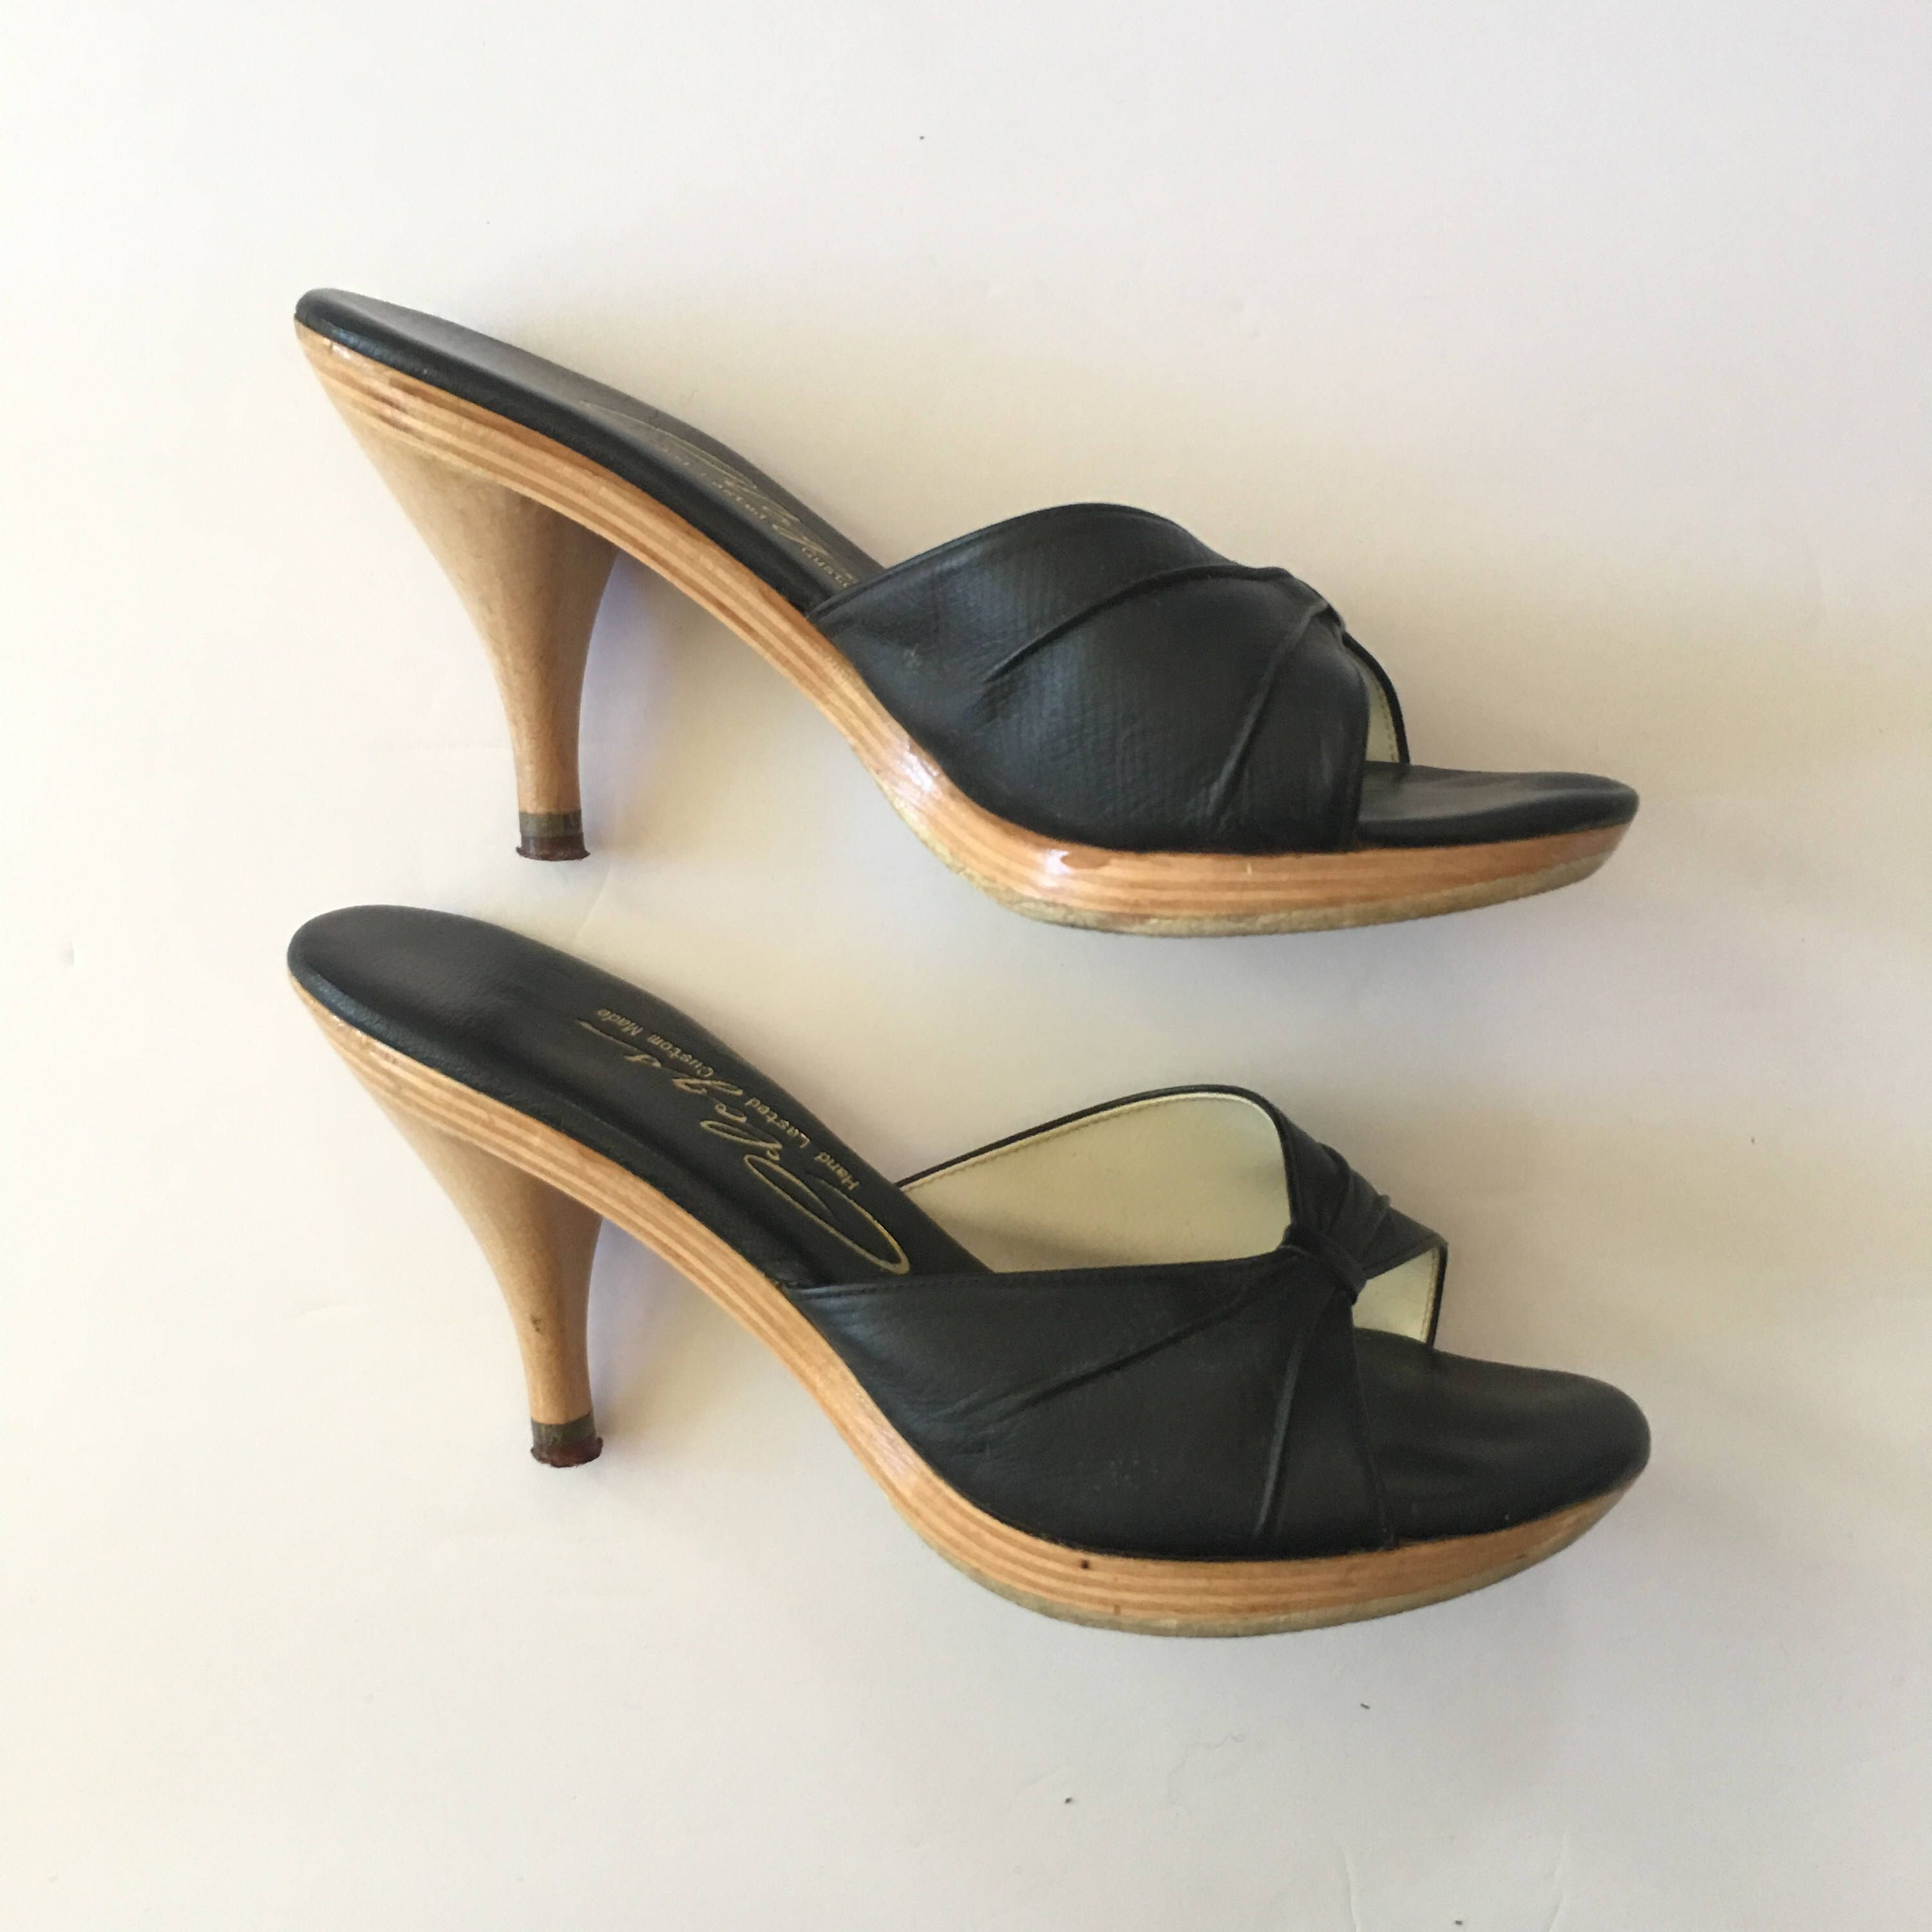 61bc4414aca3 Vintage 1950 s   1960s Polly Style Open Toe Mules - Black Leather and Wood  Handcrafted by